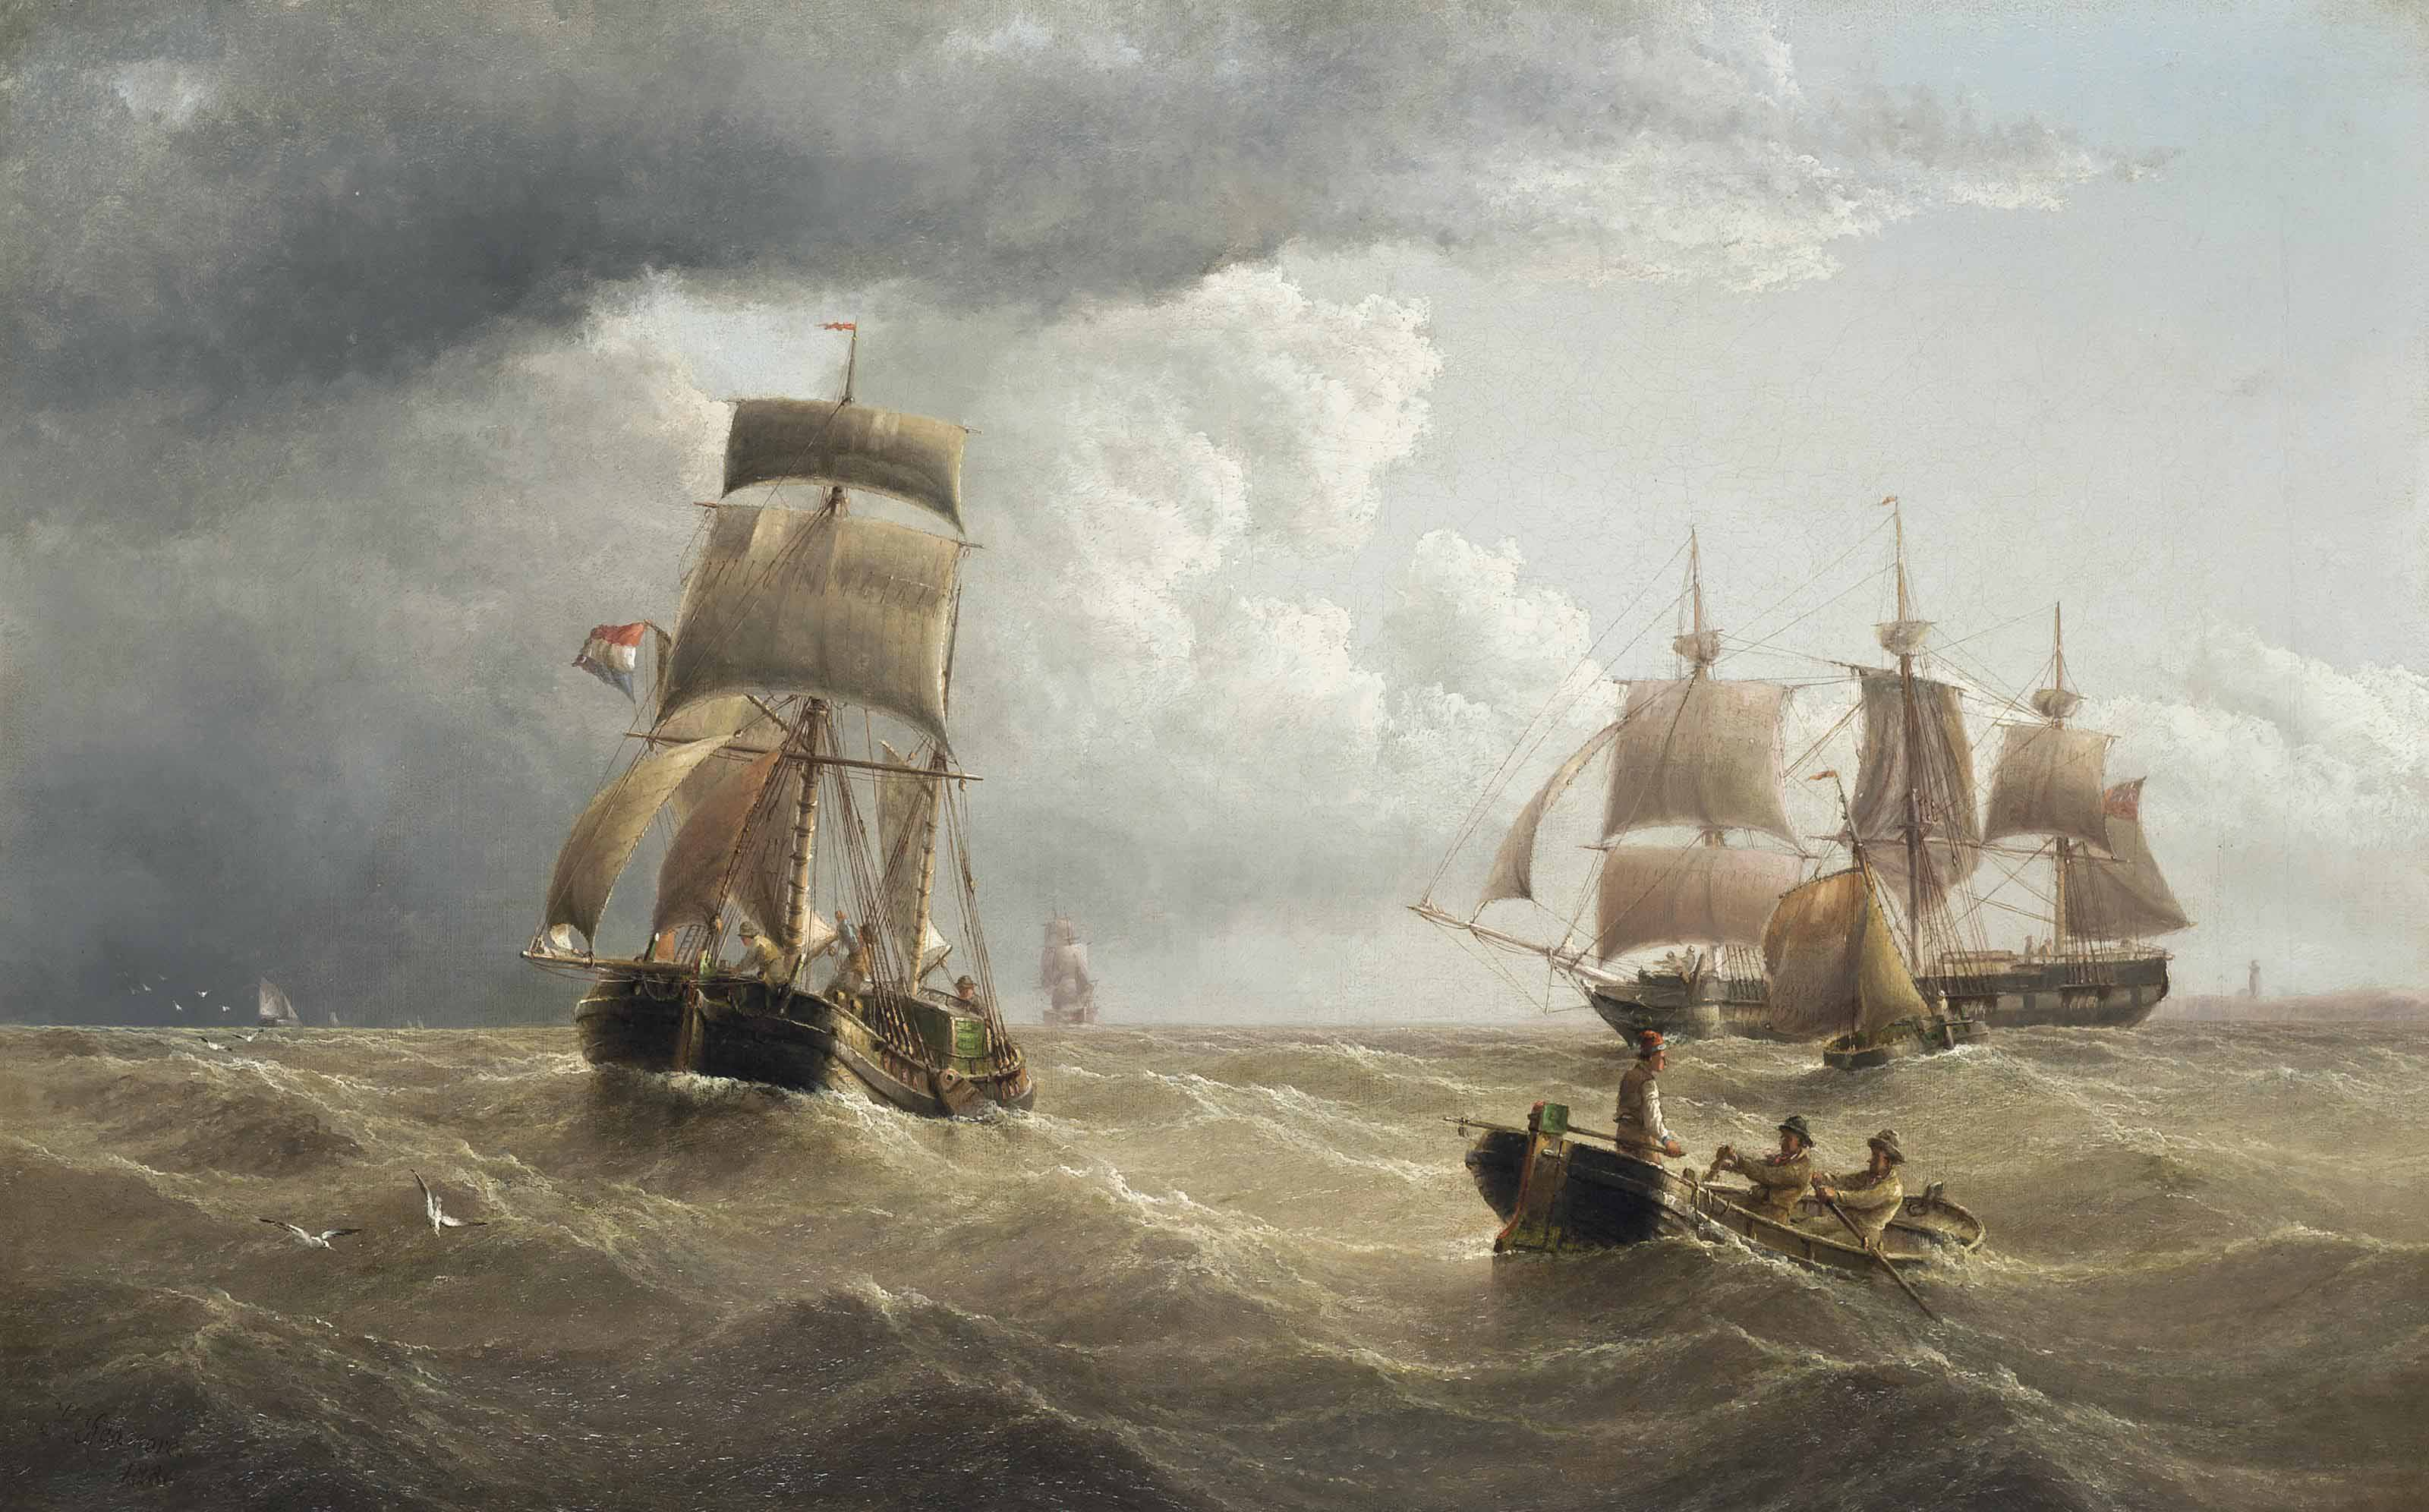 A British armed merchantman and a Dutch barge in coastal waters